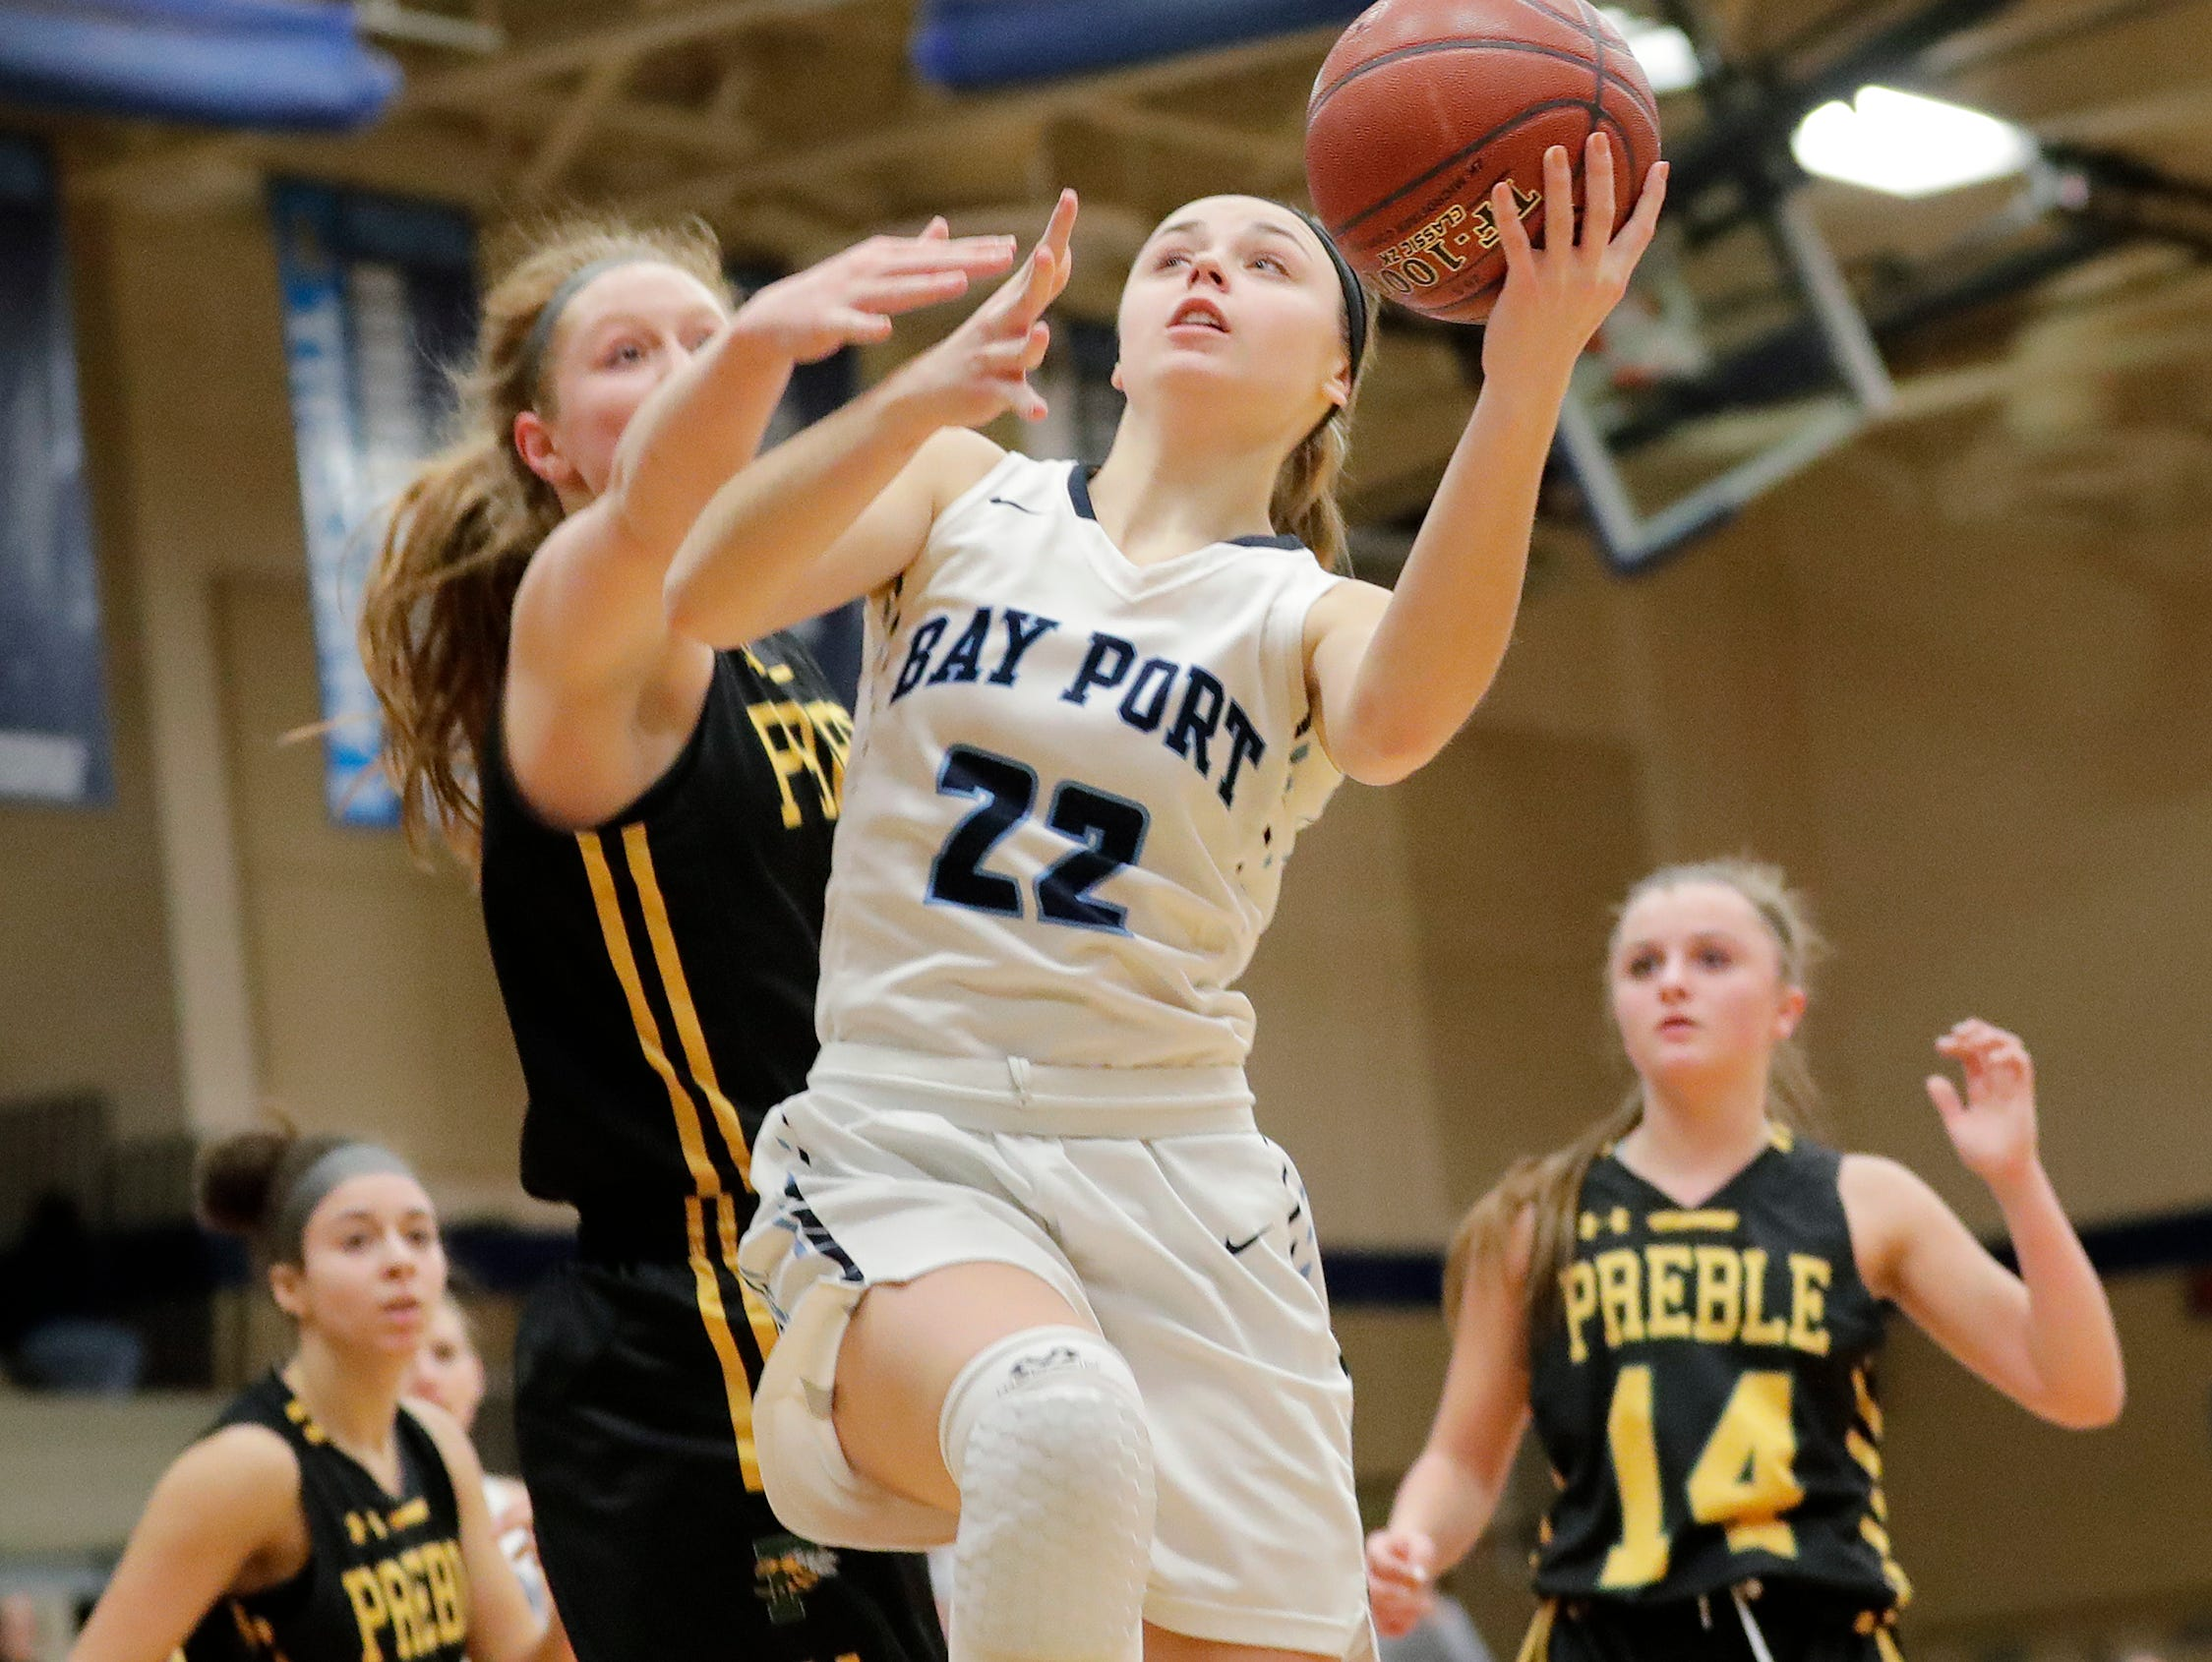 Bay Port's McKenzie Johnson (22) shoots against Green Bay Preble in a FRCC girls basketball game at Bay Port high school on Friday, February 8, 2019 in Suamico, Wis.